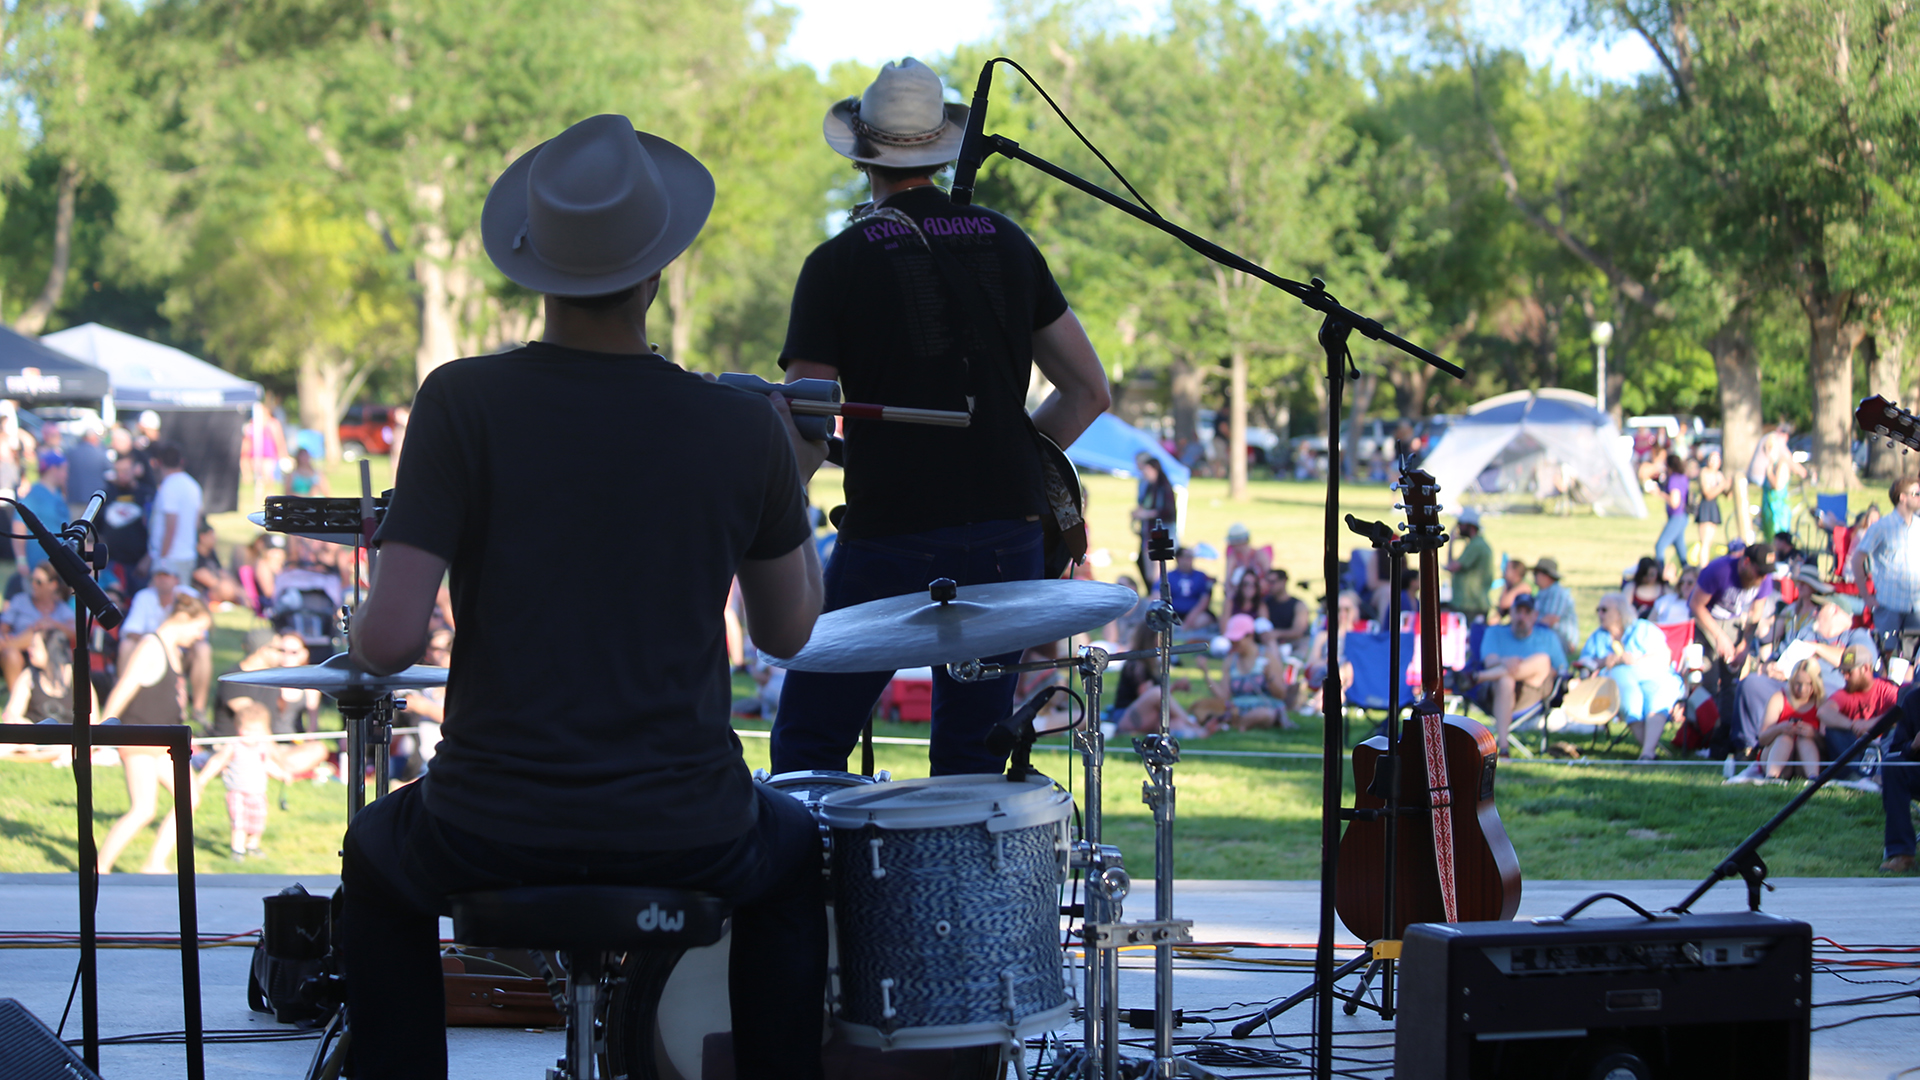 Memorial Day 2018 Roundup: Bad Magik Musik Fest, Cannon Air Show, more